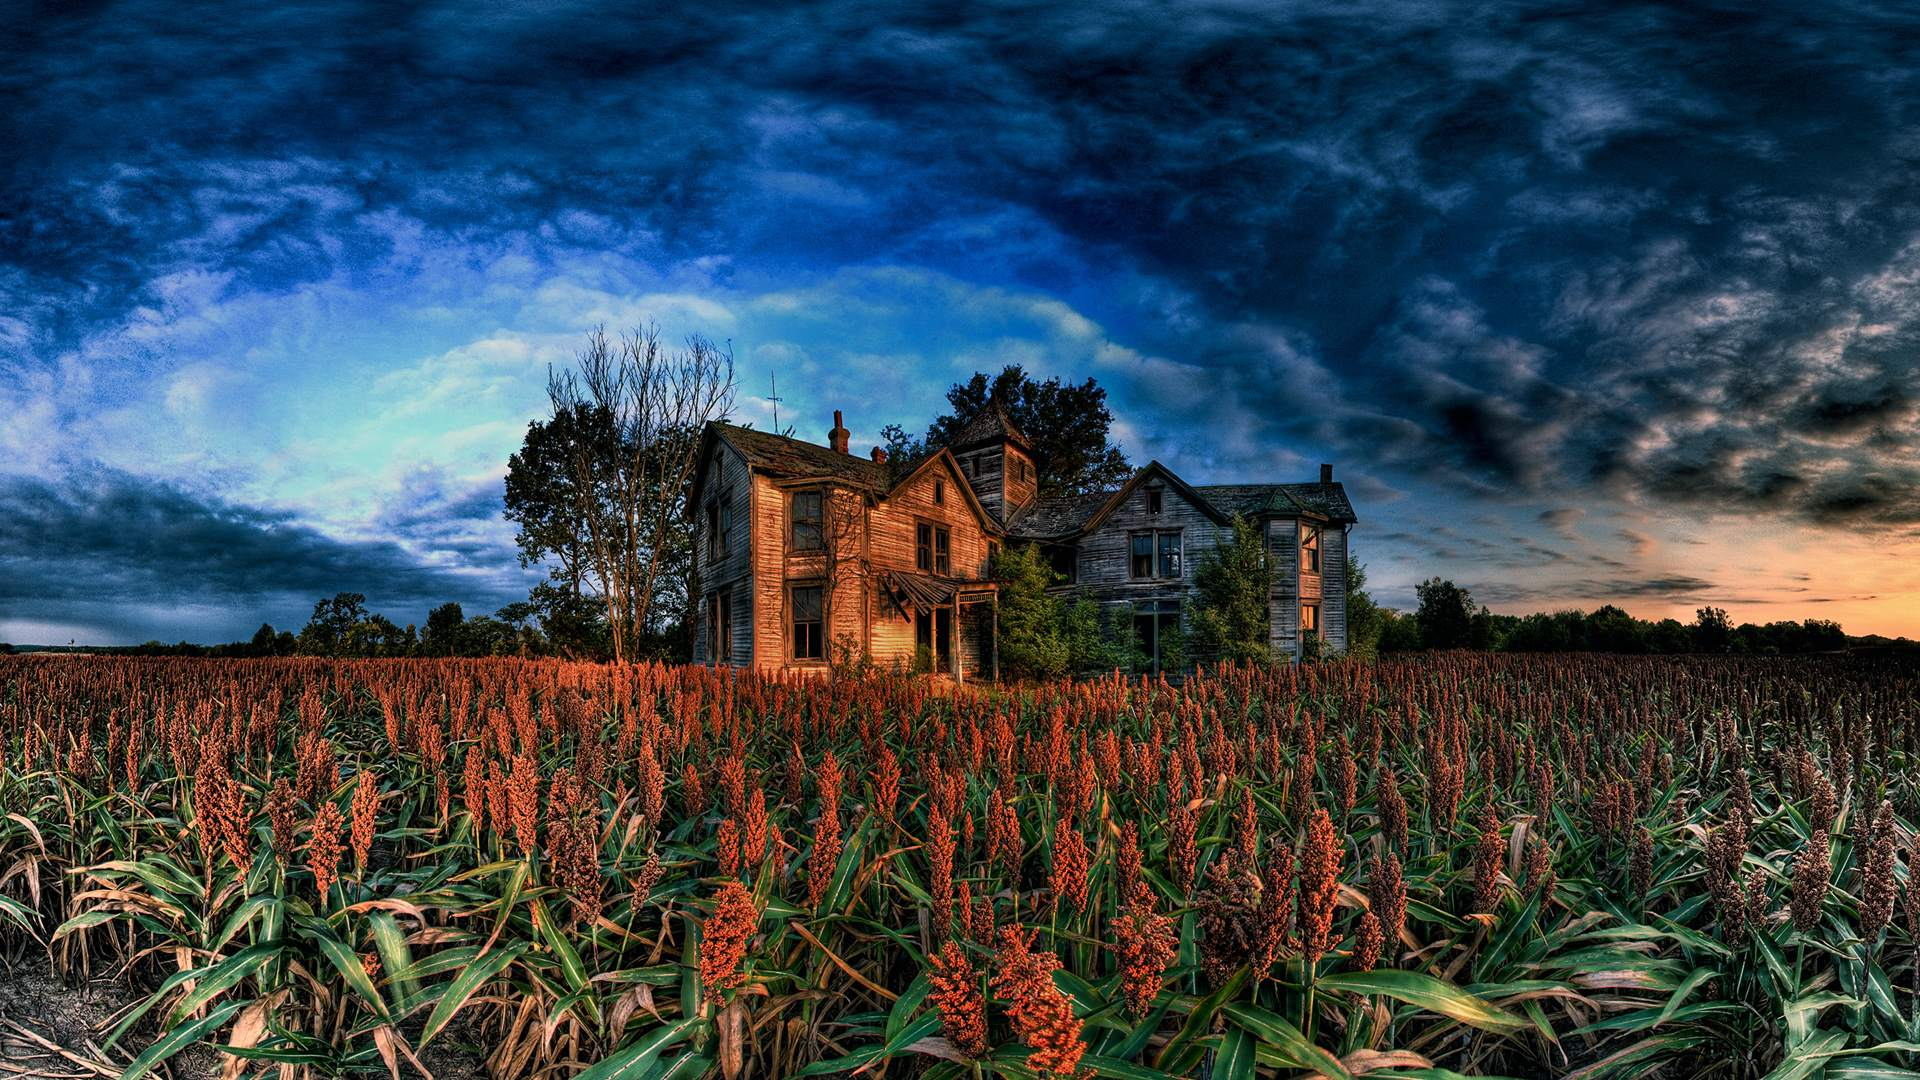 Download Sunset Wallpaper wallpaper Old House 1920x1080